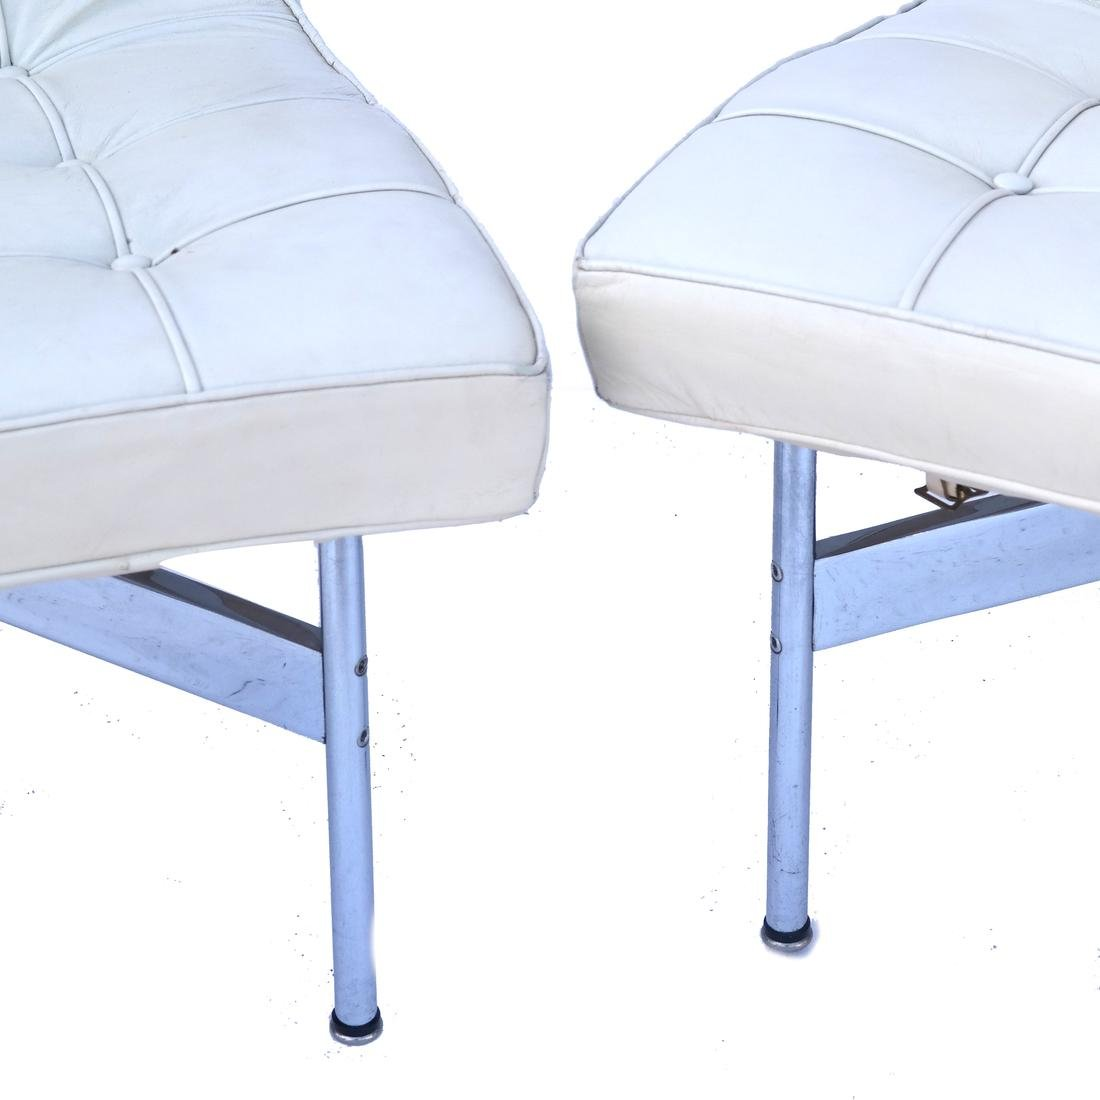 Pair of Mies van der Rohe Chairs - 2